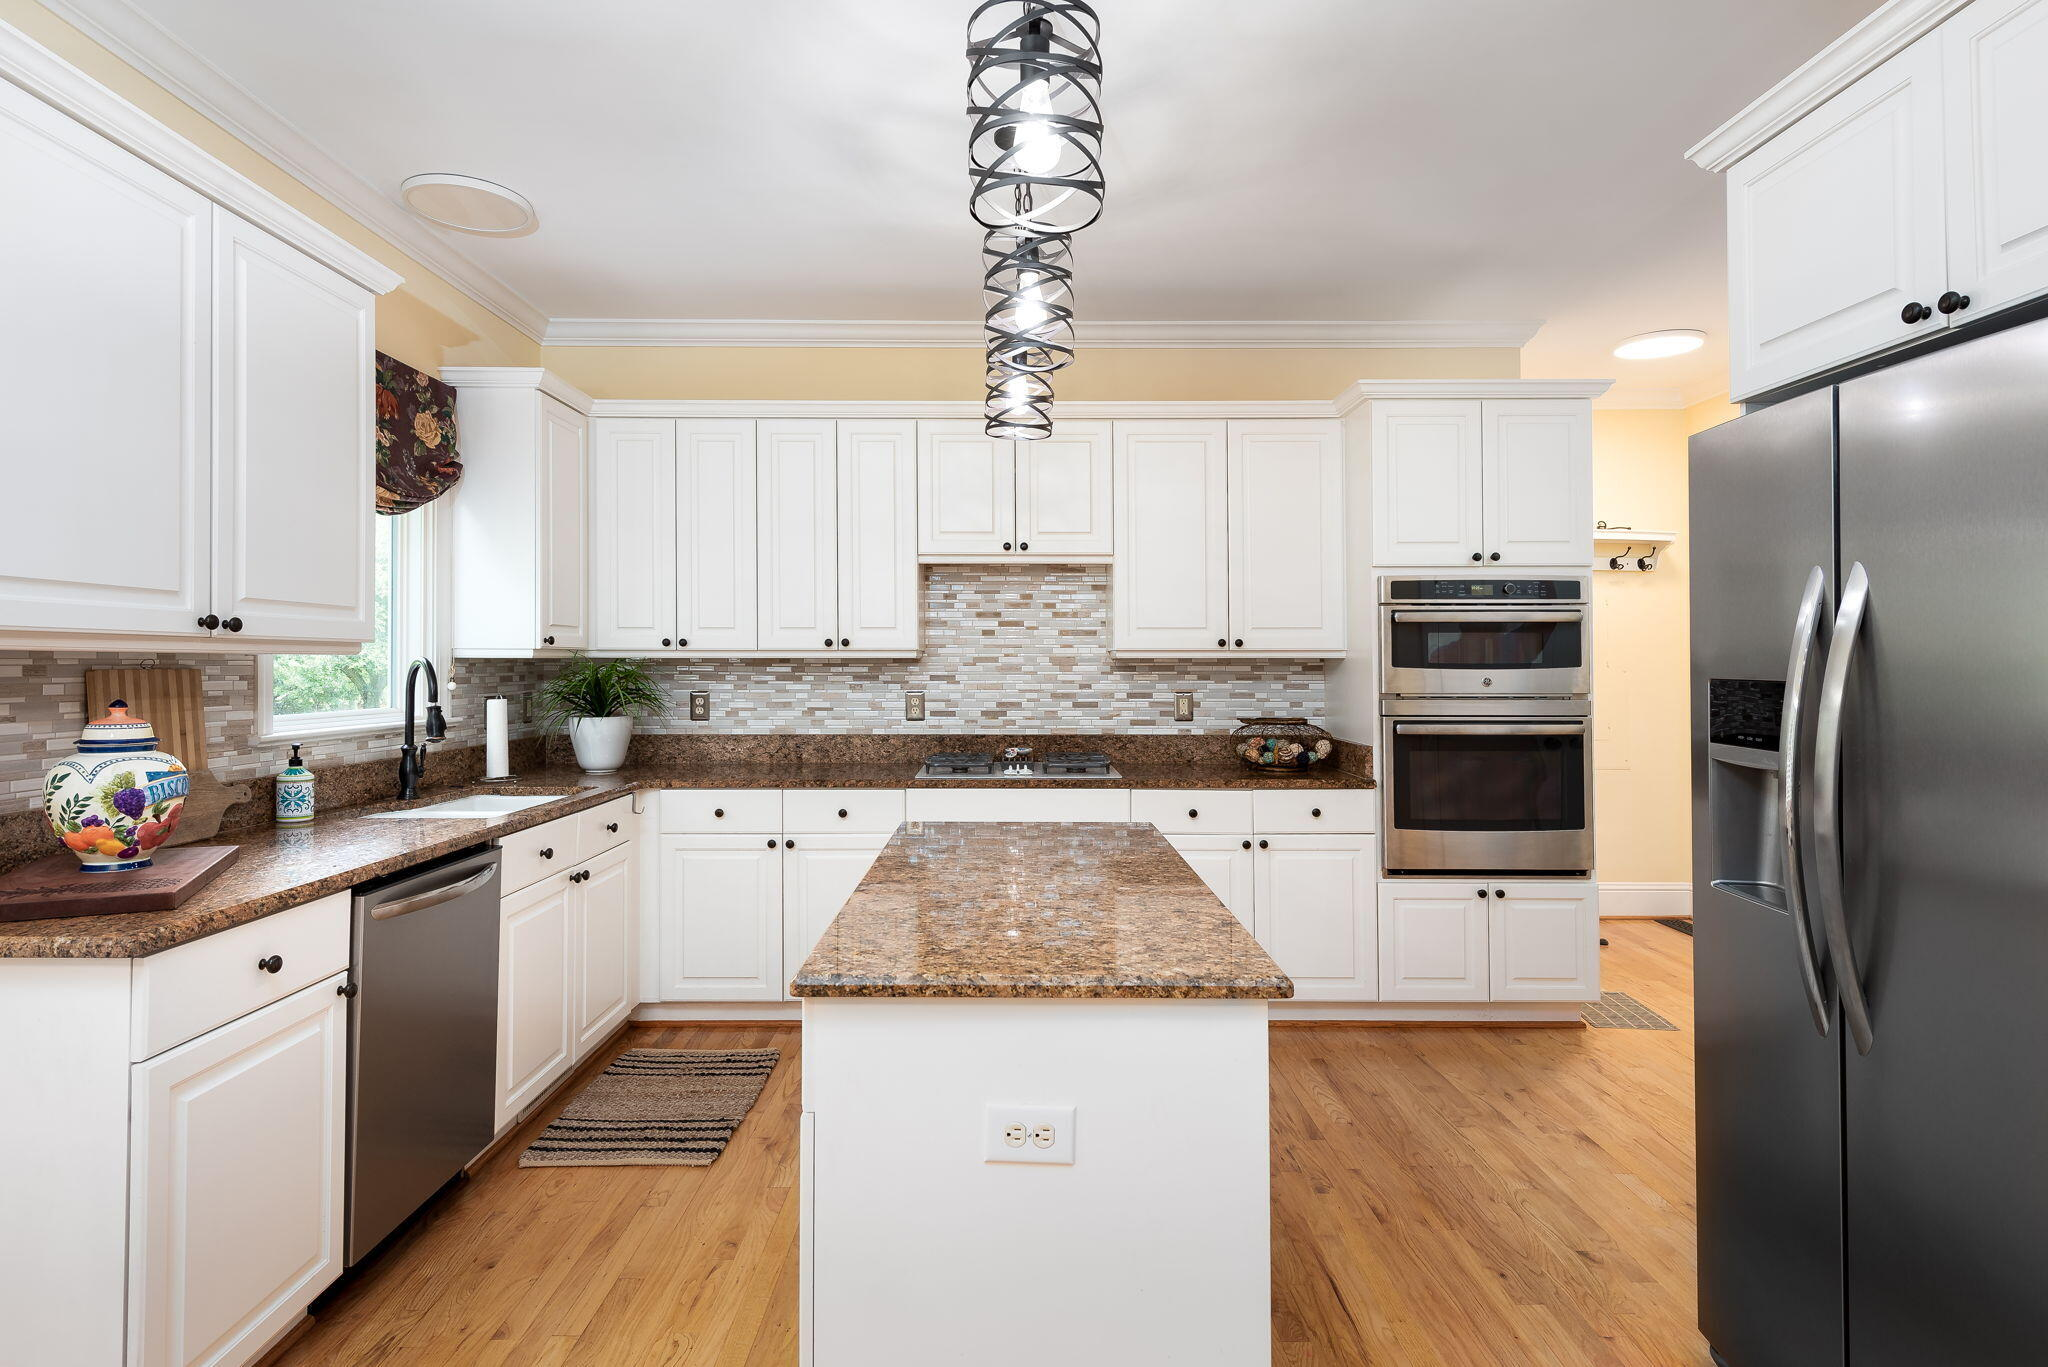 Rivertowne On The Wando Homes For Sale - 2301 Hartfords Bluff, Mount Pleasant, SC - 27